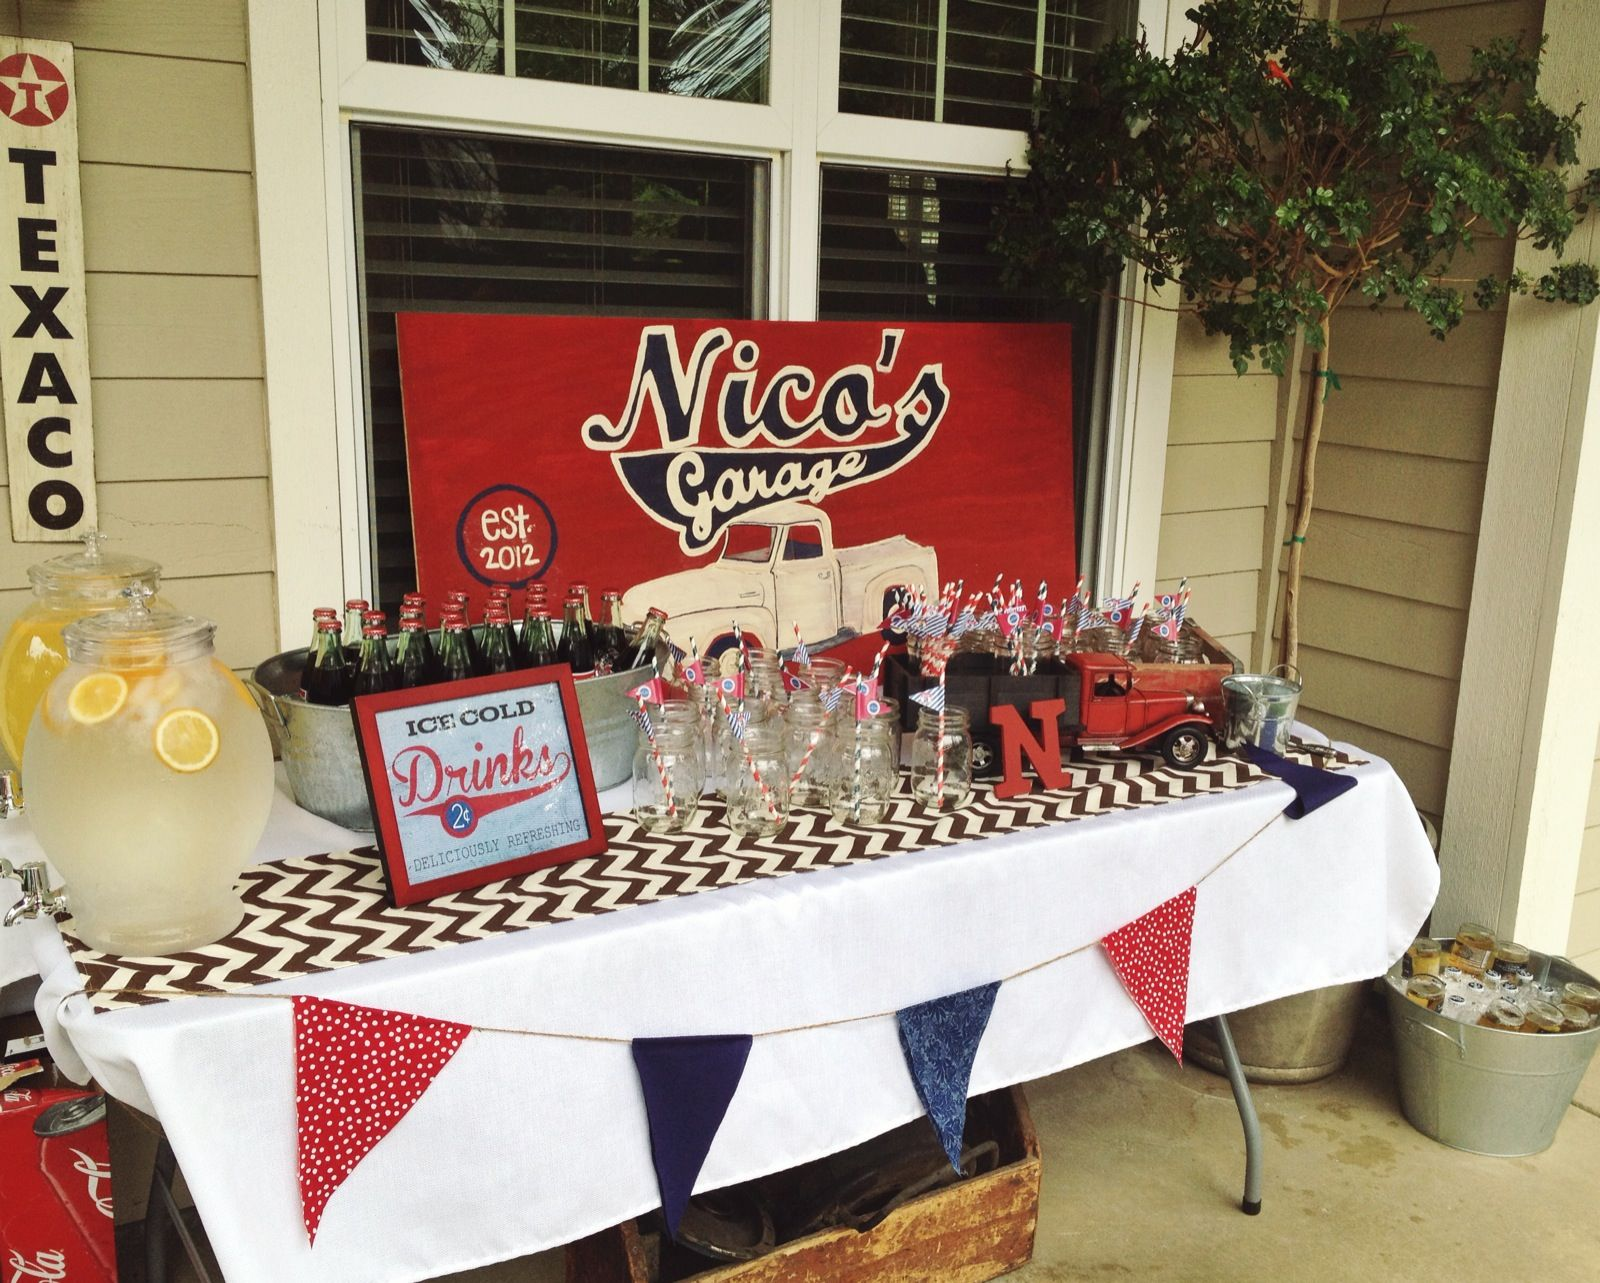 Nicos Garage Birthday Partyvintage Truck Theme Red, Navy, Burlap